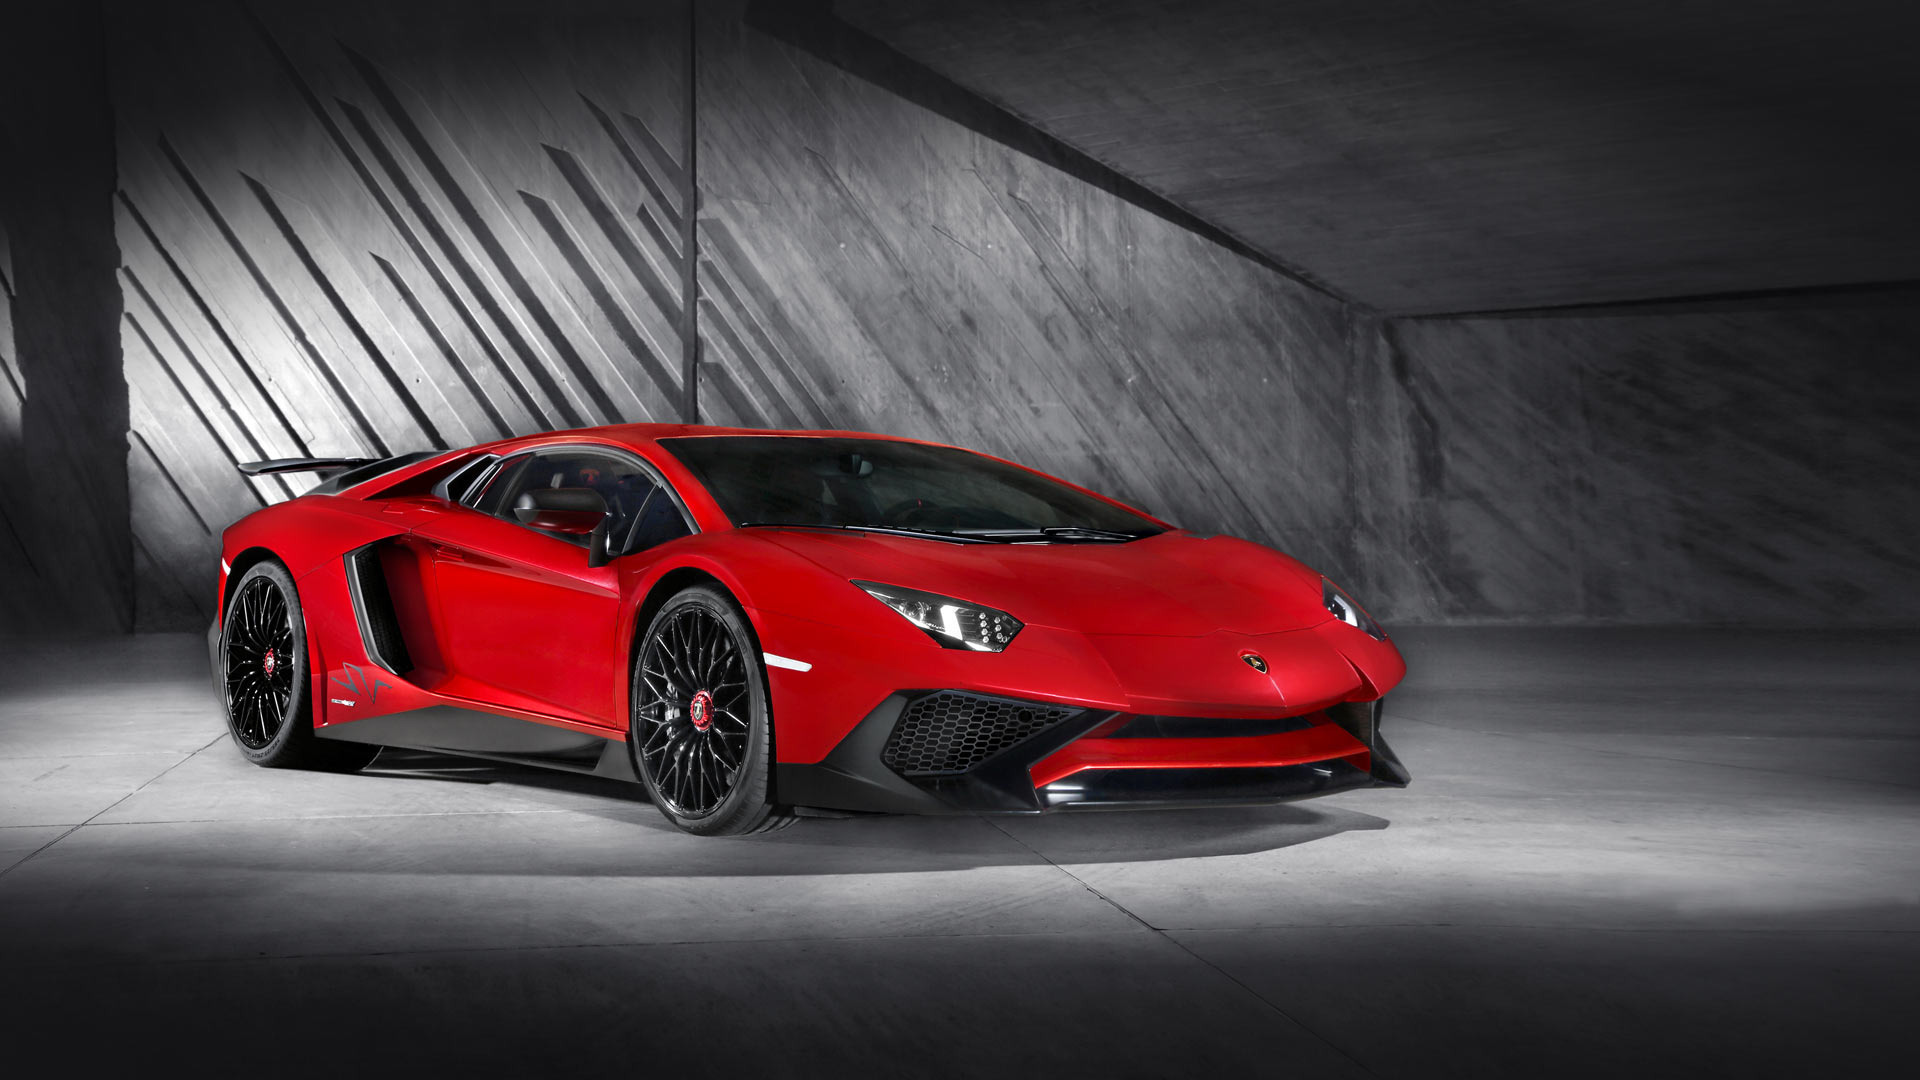 Lamborghini Aventador Sv Hd Wallpapers HD Wallpapers Download free images and photos [musssic.tk]